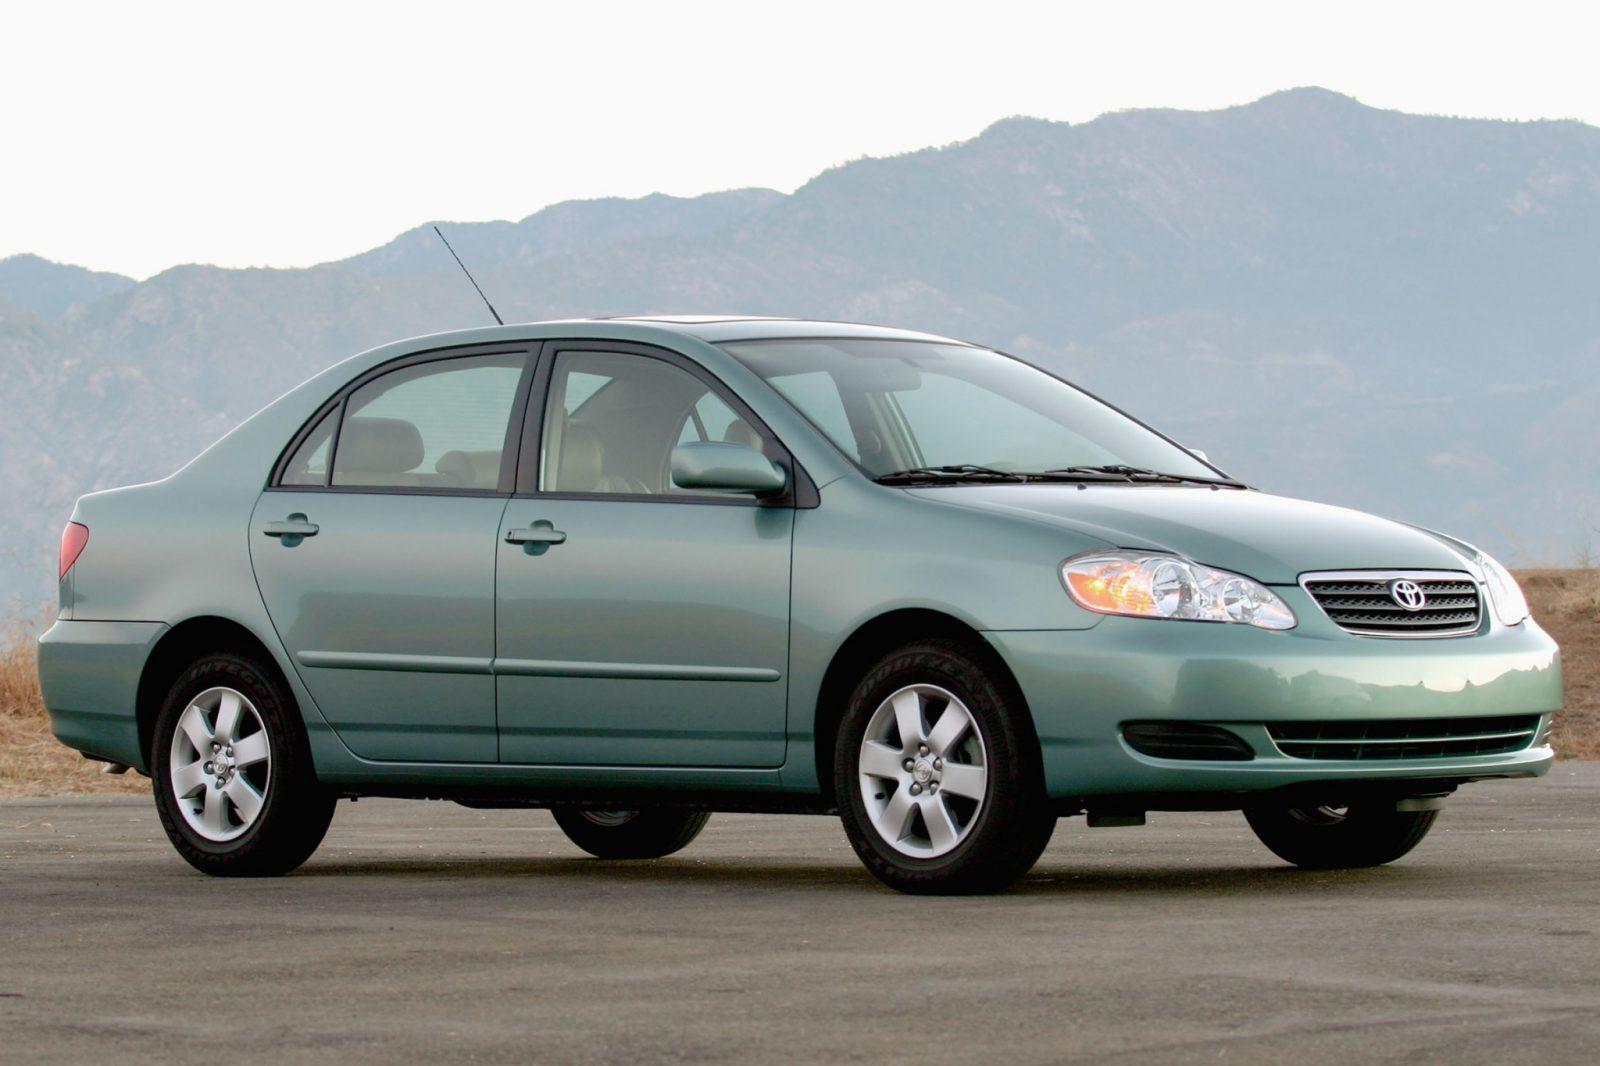 2007 TOYOTA COROLLA PROBLEMS Made Simple